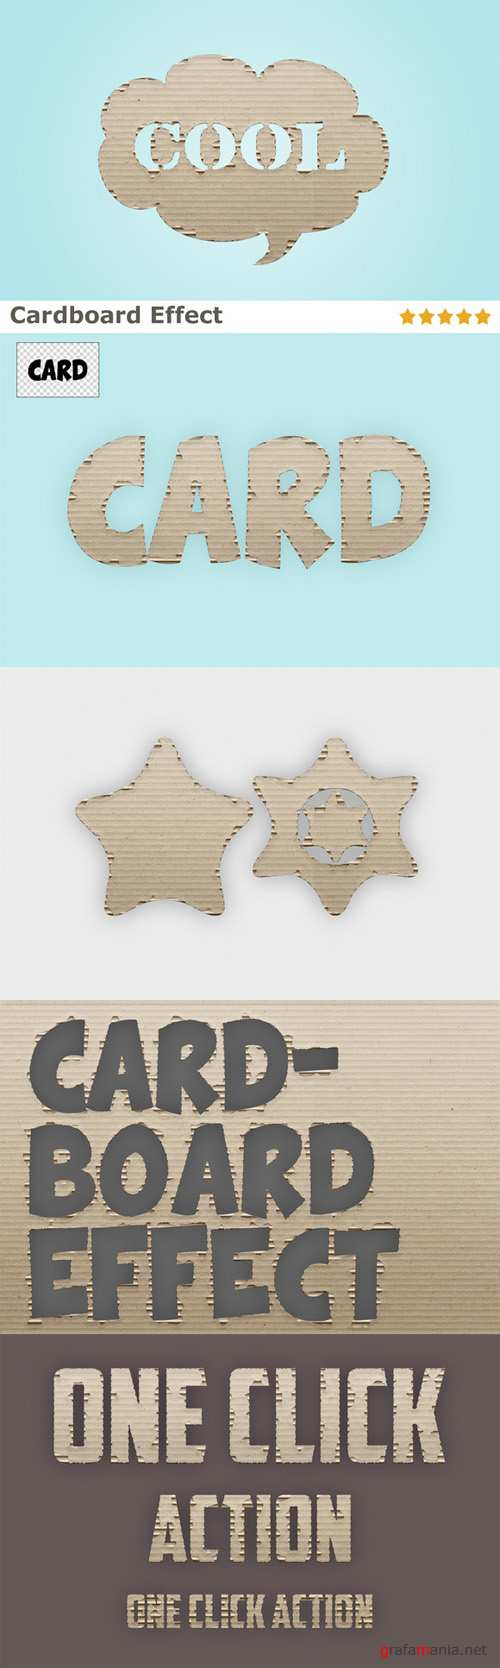 CreativeMarket - Cardboard Effect Action 17666